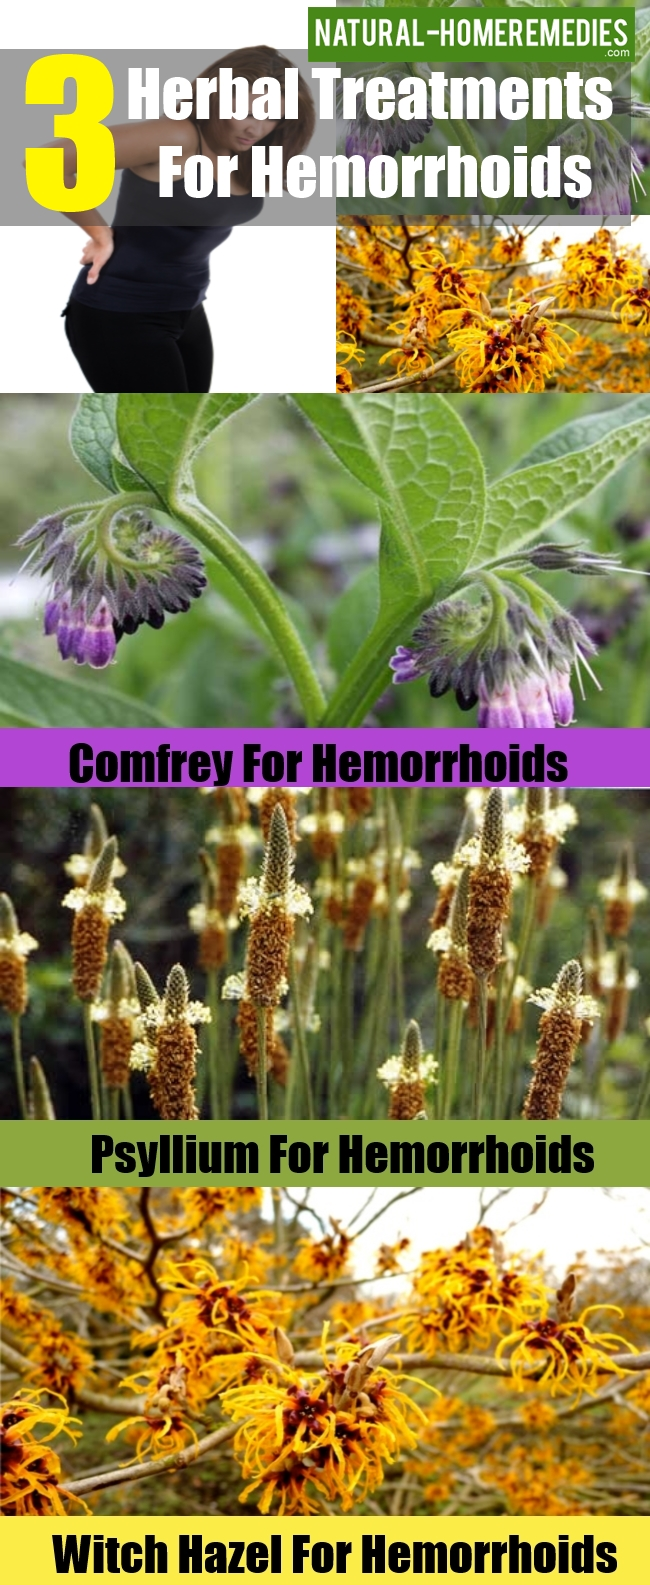 Herbal Treatments For Hemorrhoids